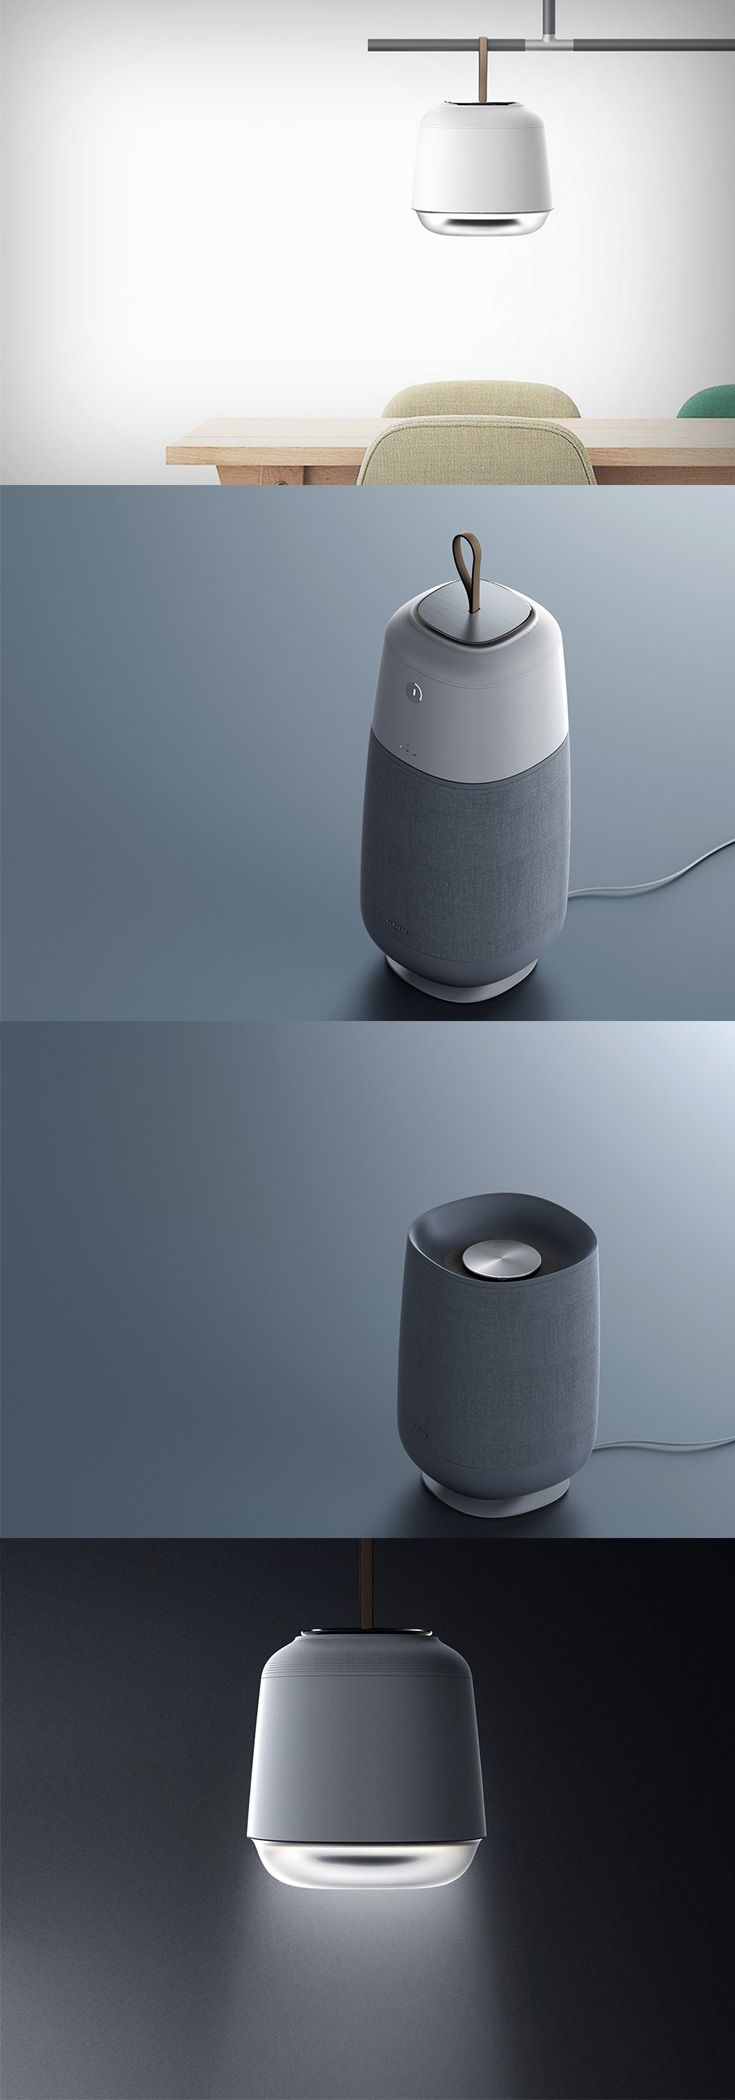 The 'Belyse air purifier' is a part of that era of products that celebrates 'form follows emotion'... READ MORE at Yanko Design !